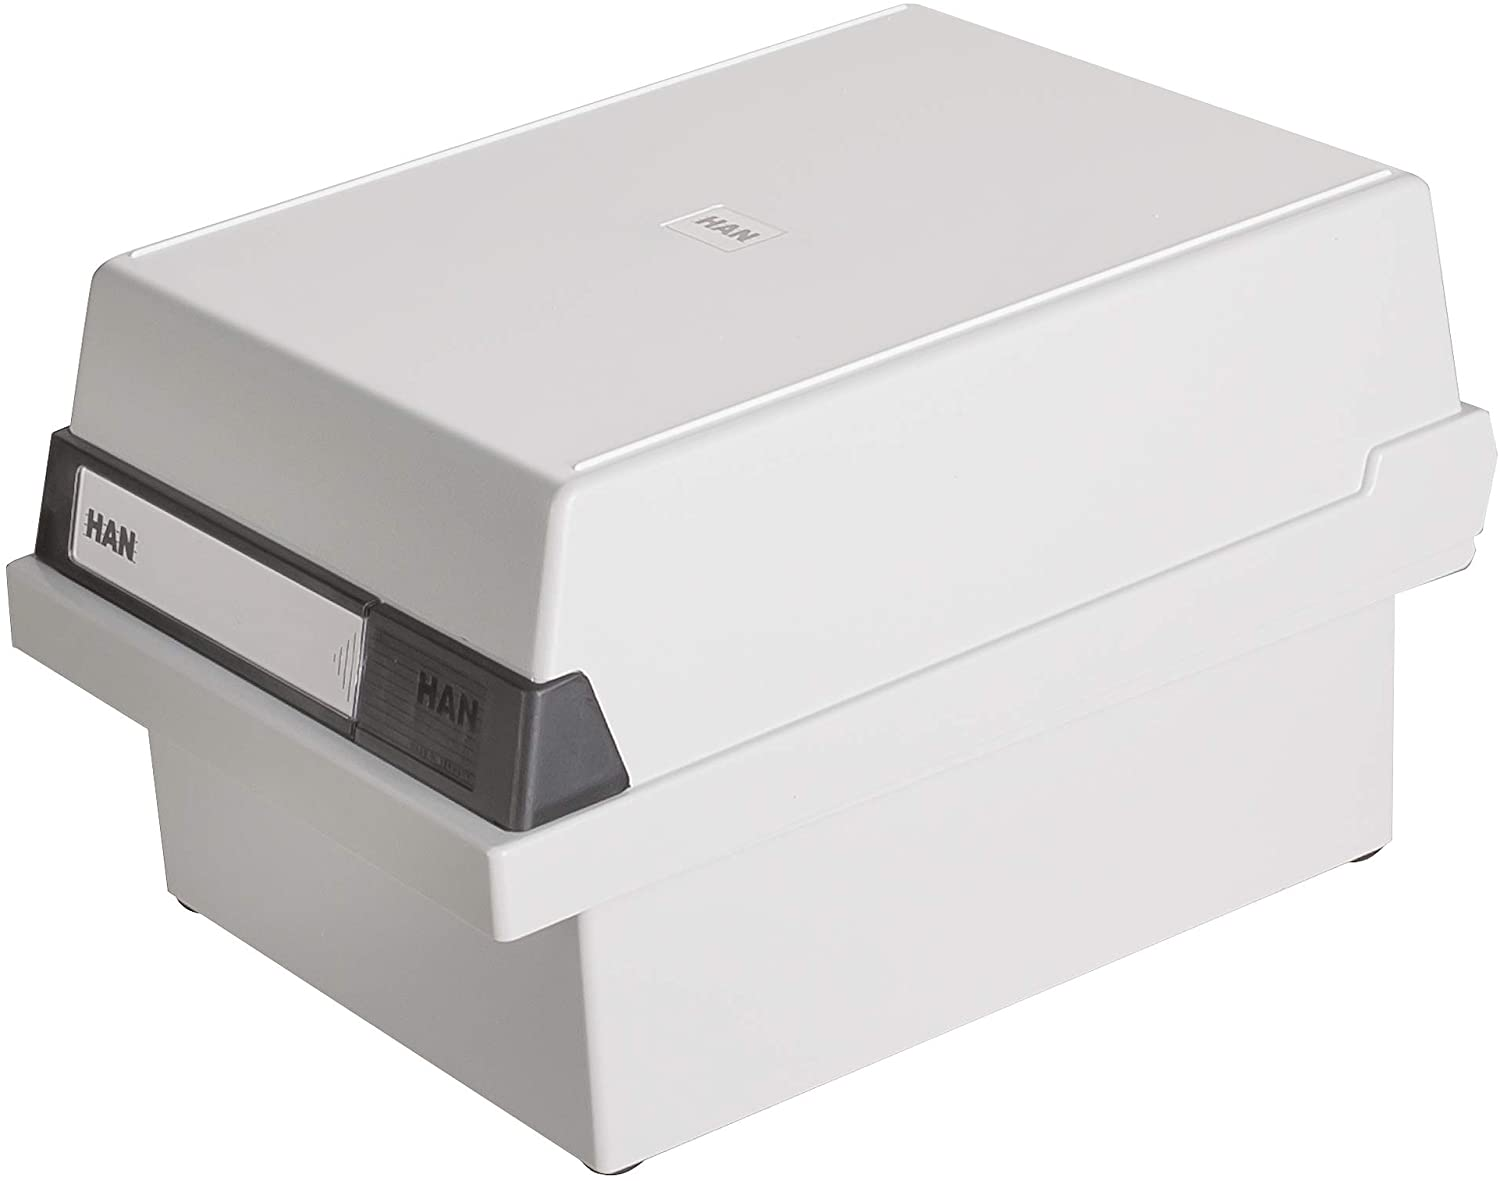 Han 966-11 Card Index Box for 800 Index Cards A6 Plastic Light Grey